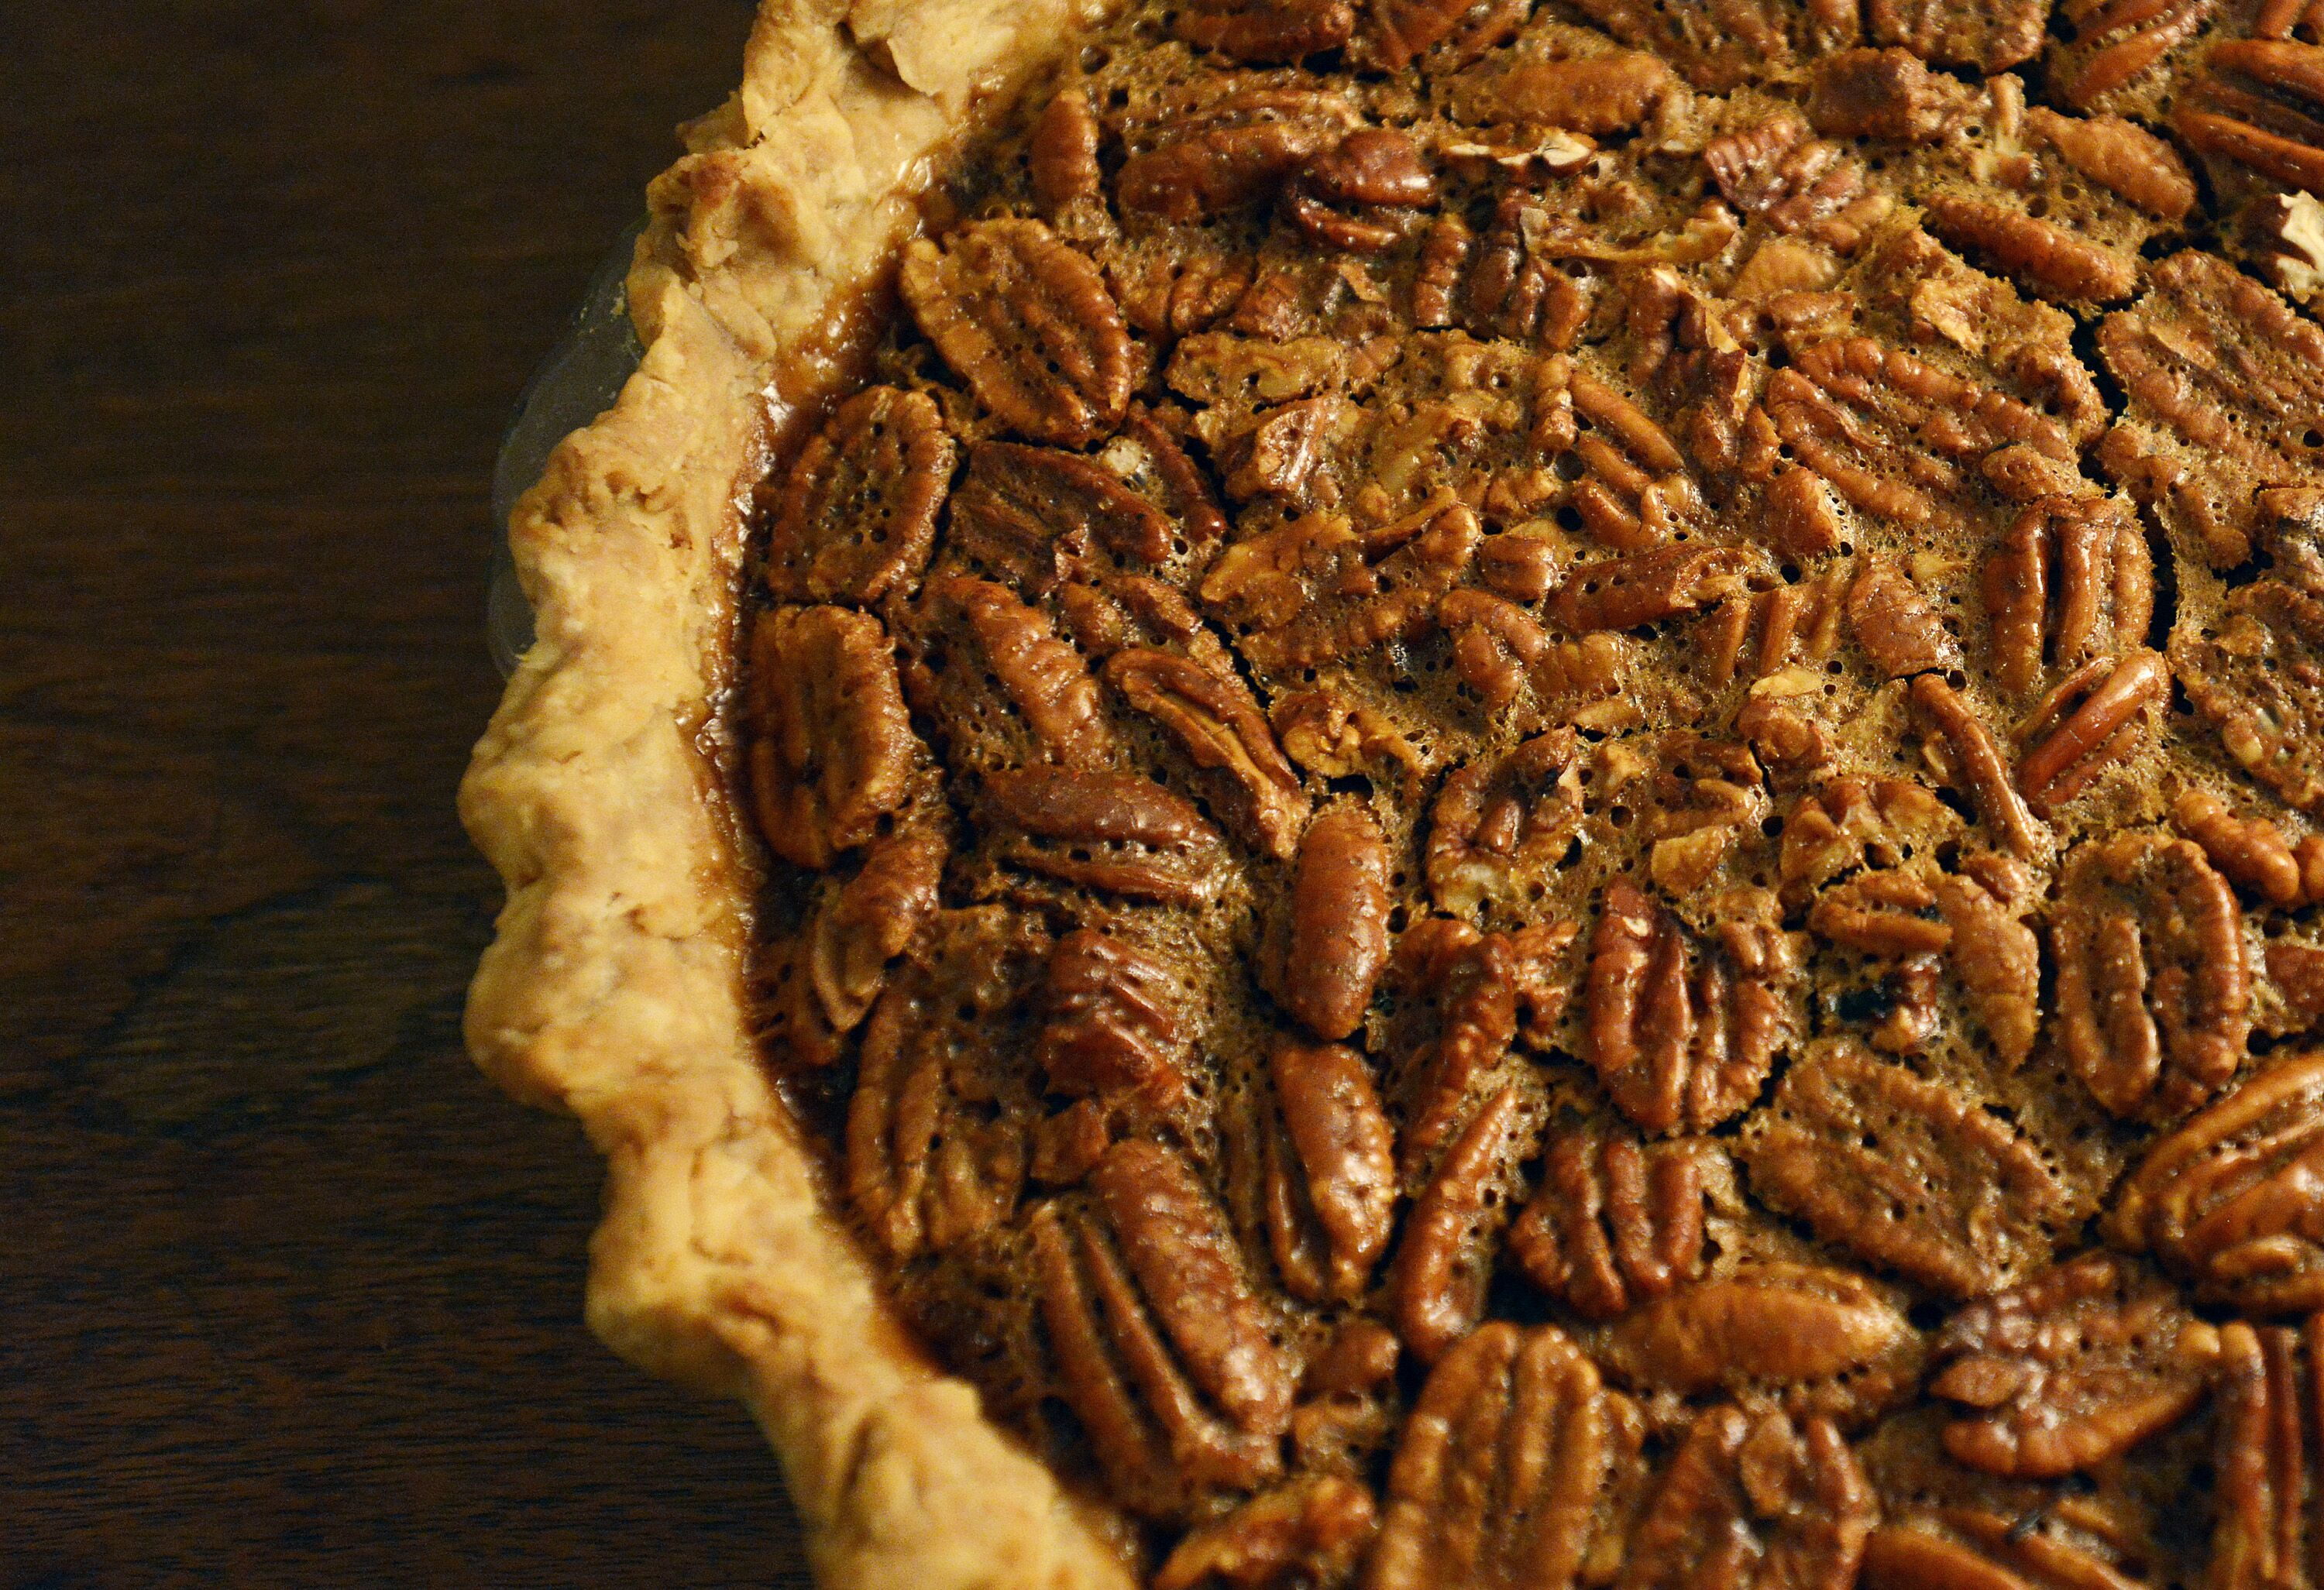 PORTLAND, ME - NOVEMBER 12: Pecan Pie by James Schwartz for the Portland Press Herald signature Thanksgiving dish Thursday, November 12, 2015. (Photo by Shawn Patrick Ouellette/Portland Press Herald via Getty Images)